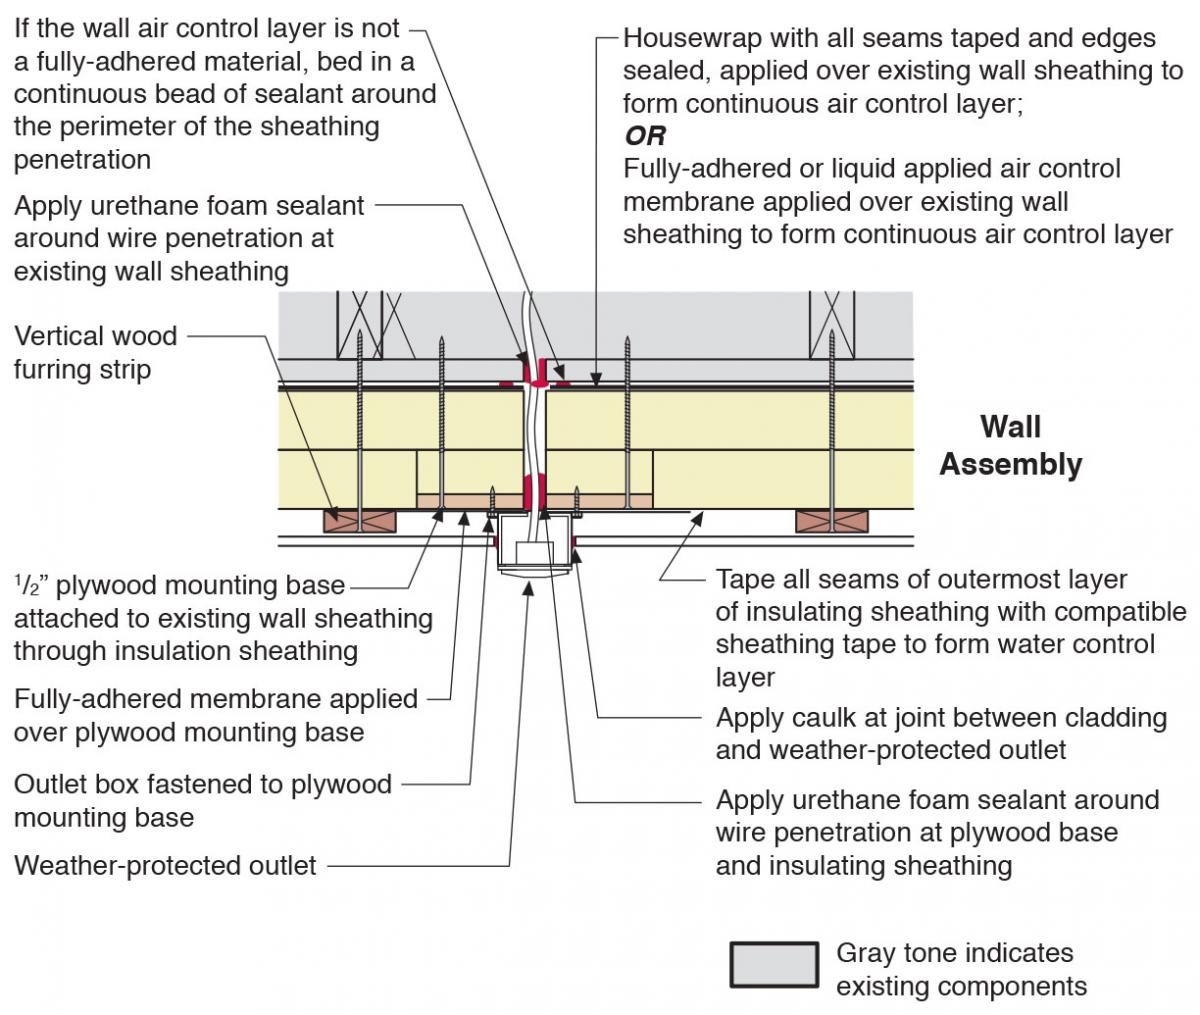 Plan view of electric box installation in exterior wall showing flashing and air sealing details